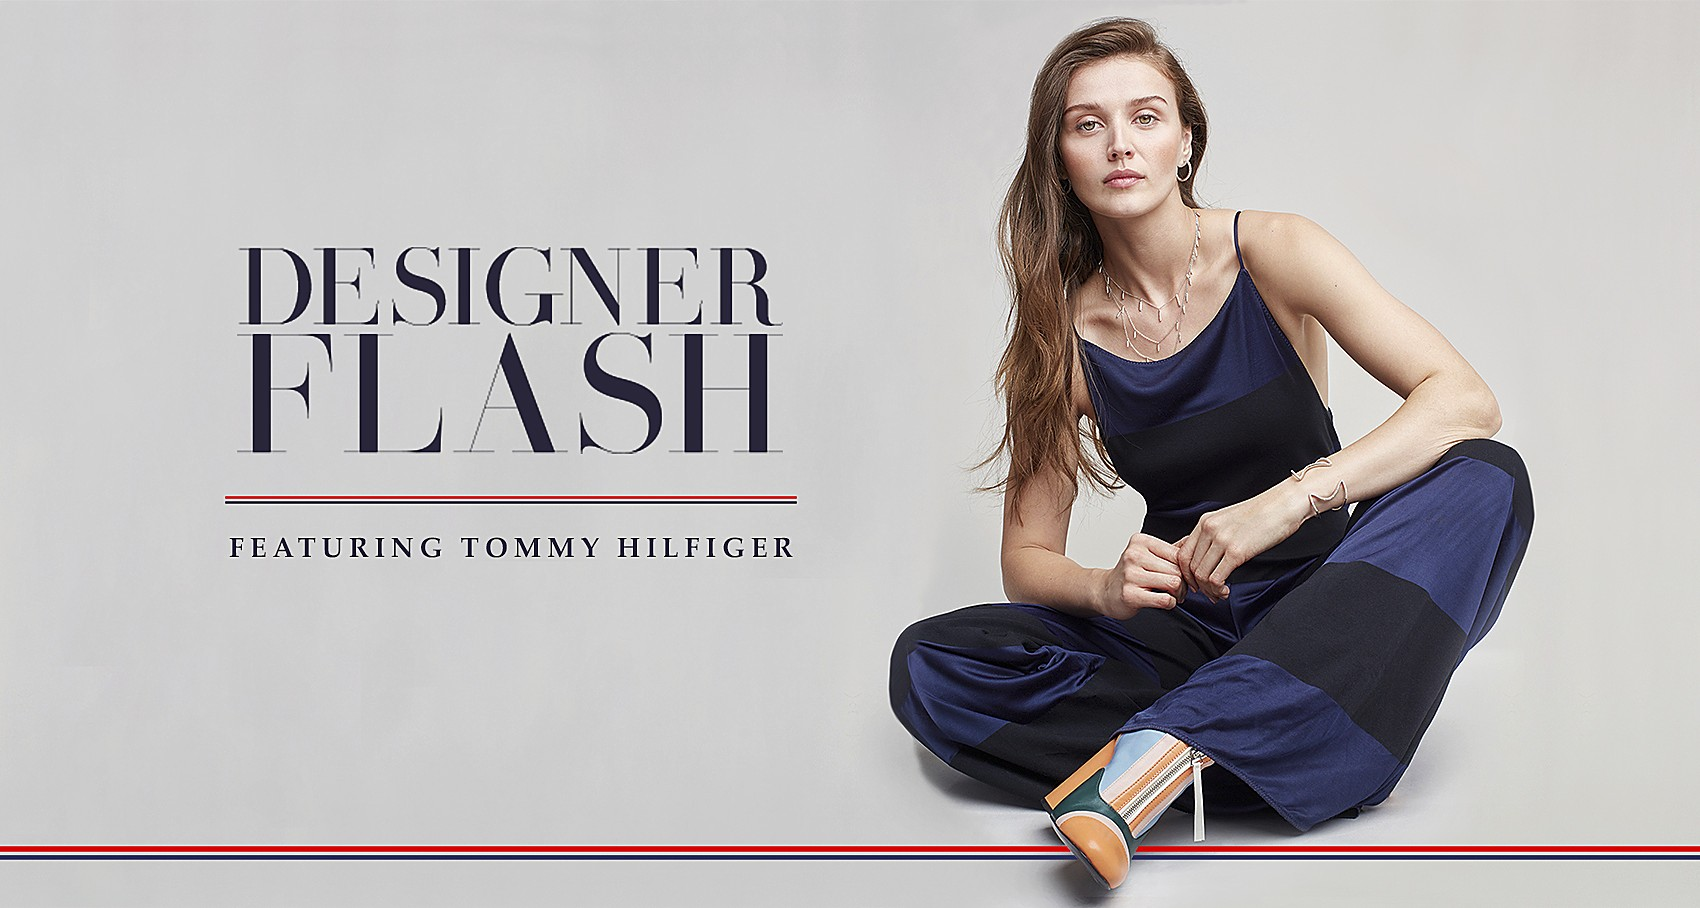 TOMMY HILFIGER MAY 2017